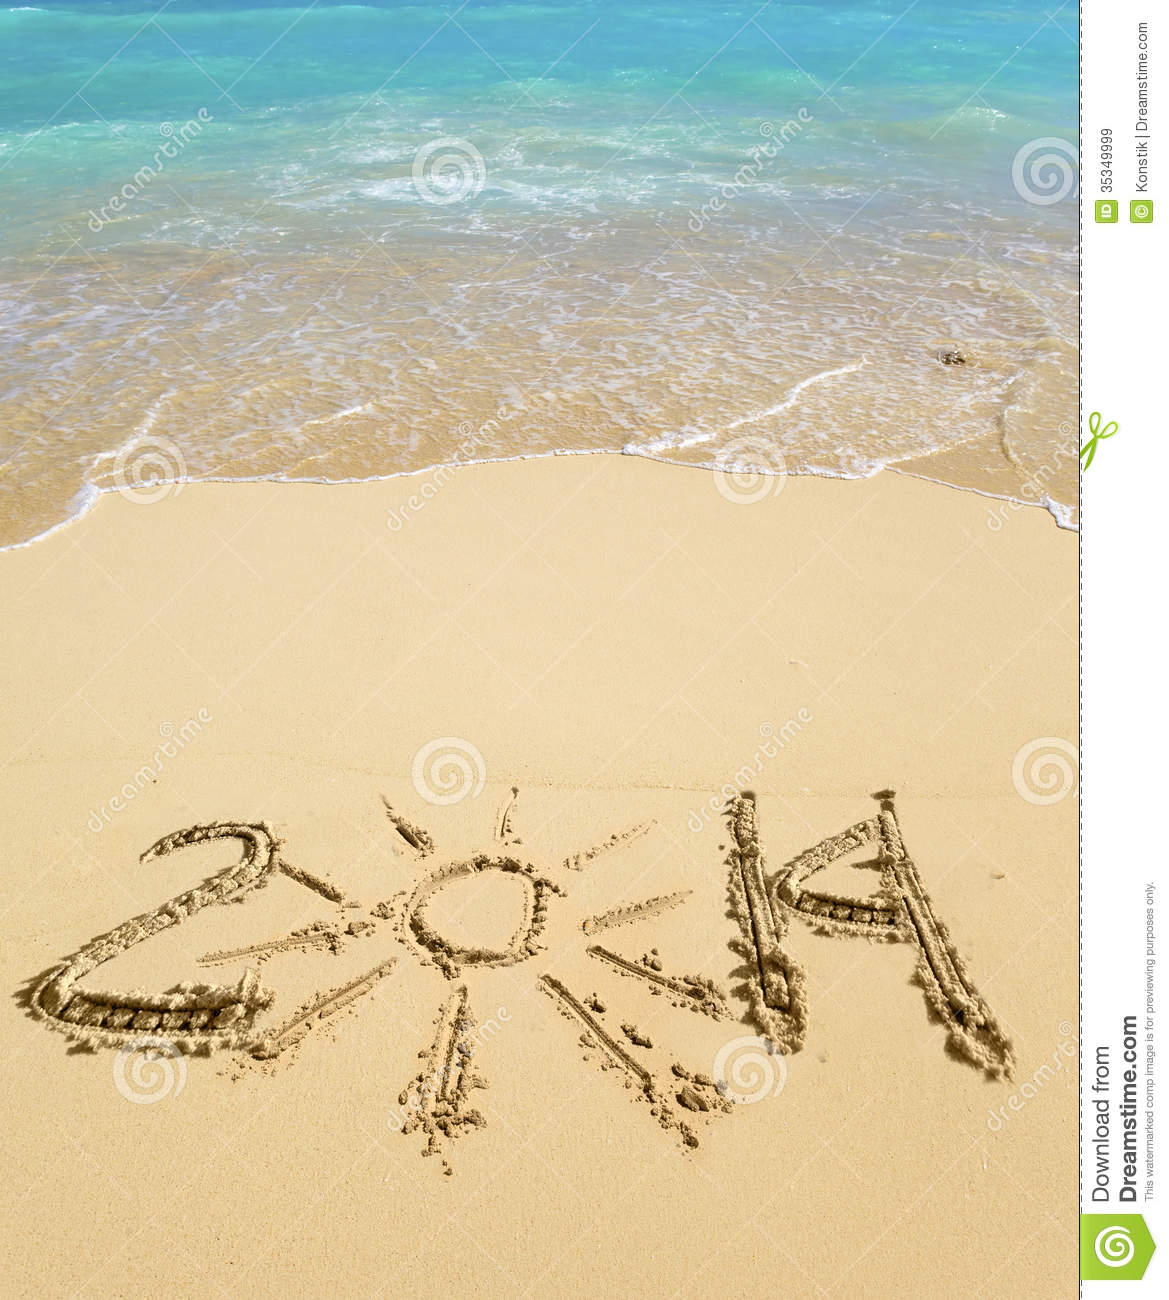 Beautiful Sunny Day At Tropical Beach Royalty Free Stock: Meeting Of New Year 2014 On A Tropical Beach In A Sunny